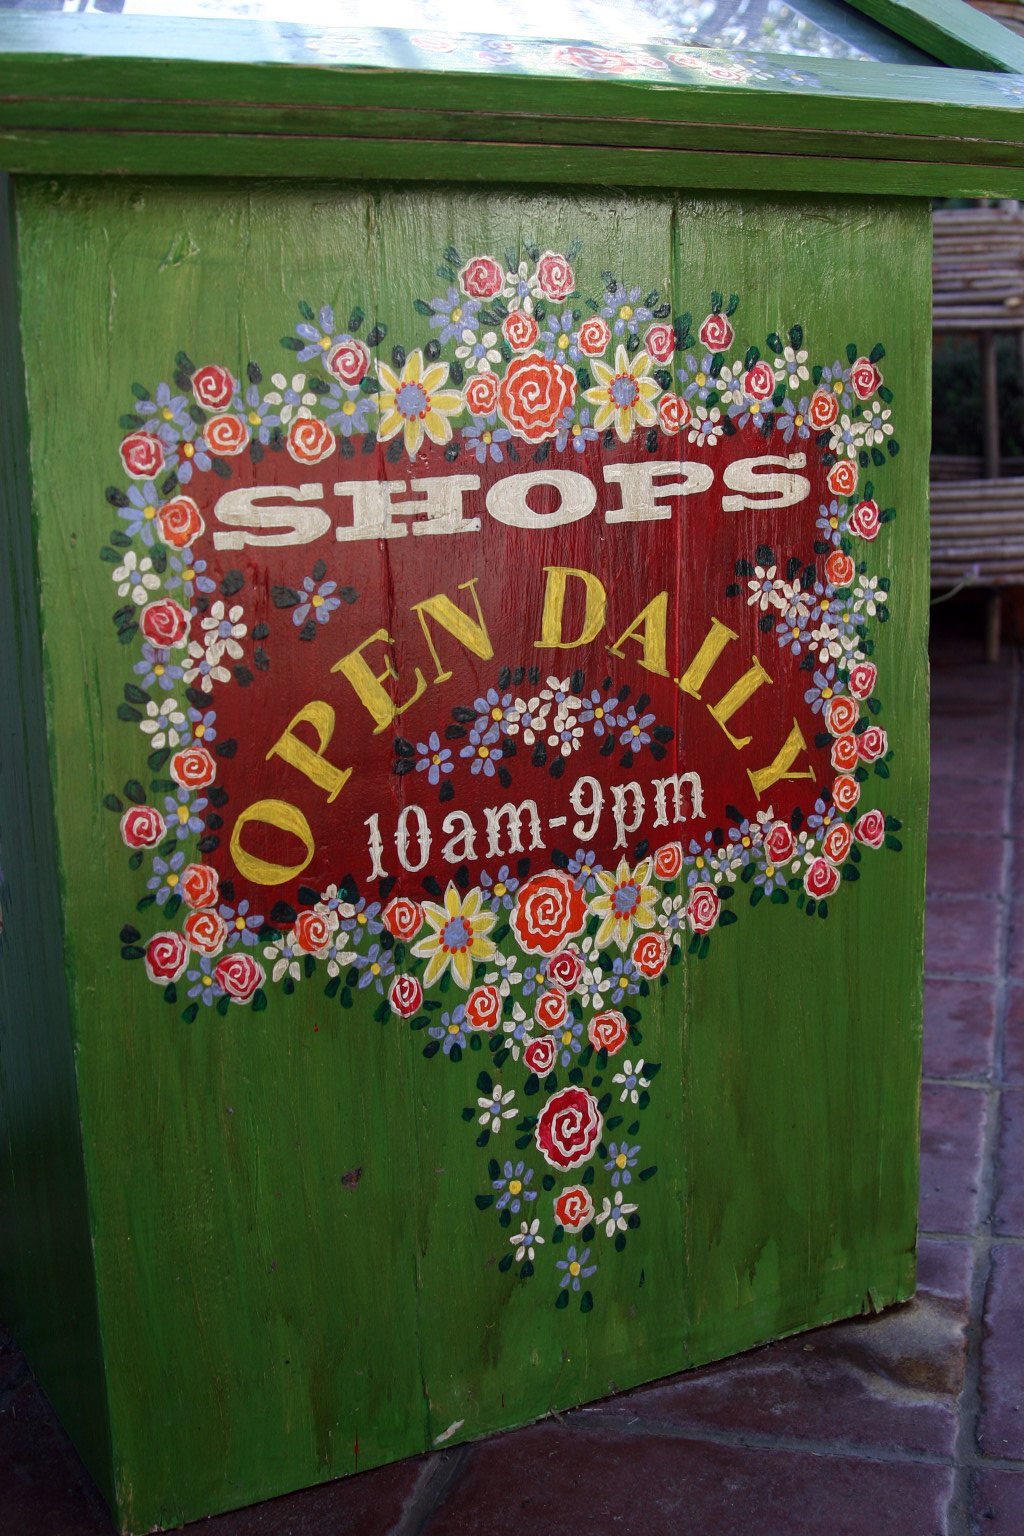 painted signage - Shops Open Daily 11am-9pm